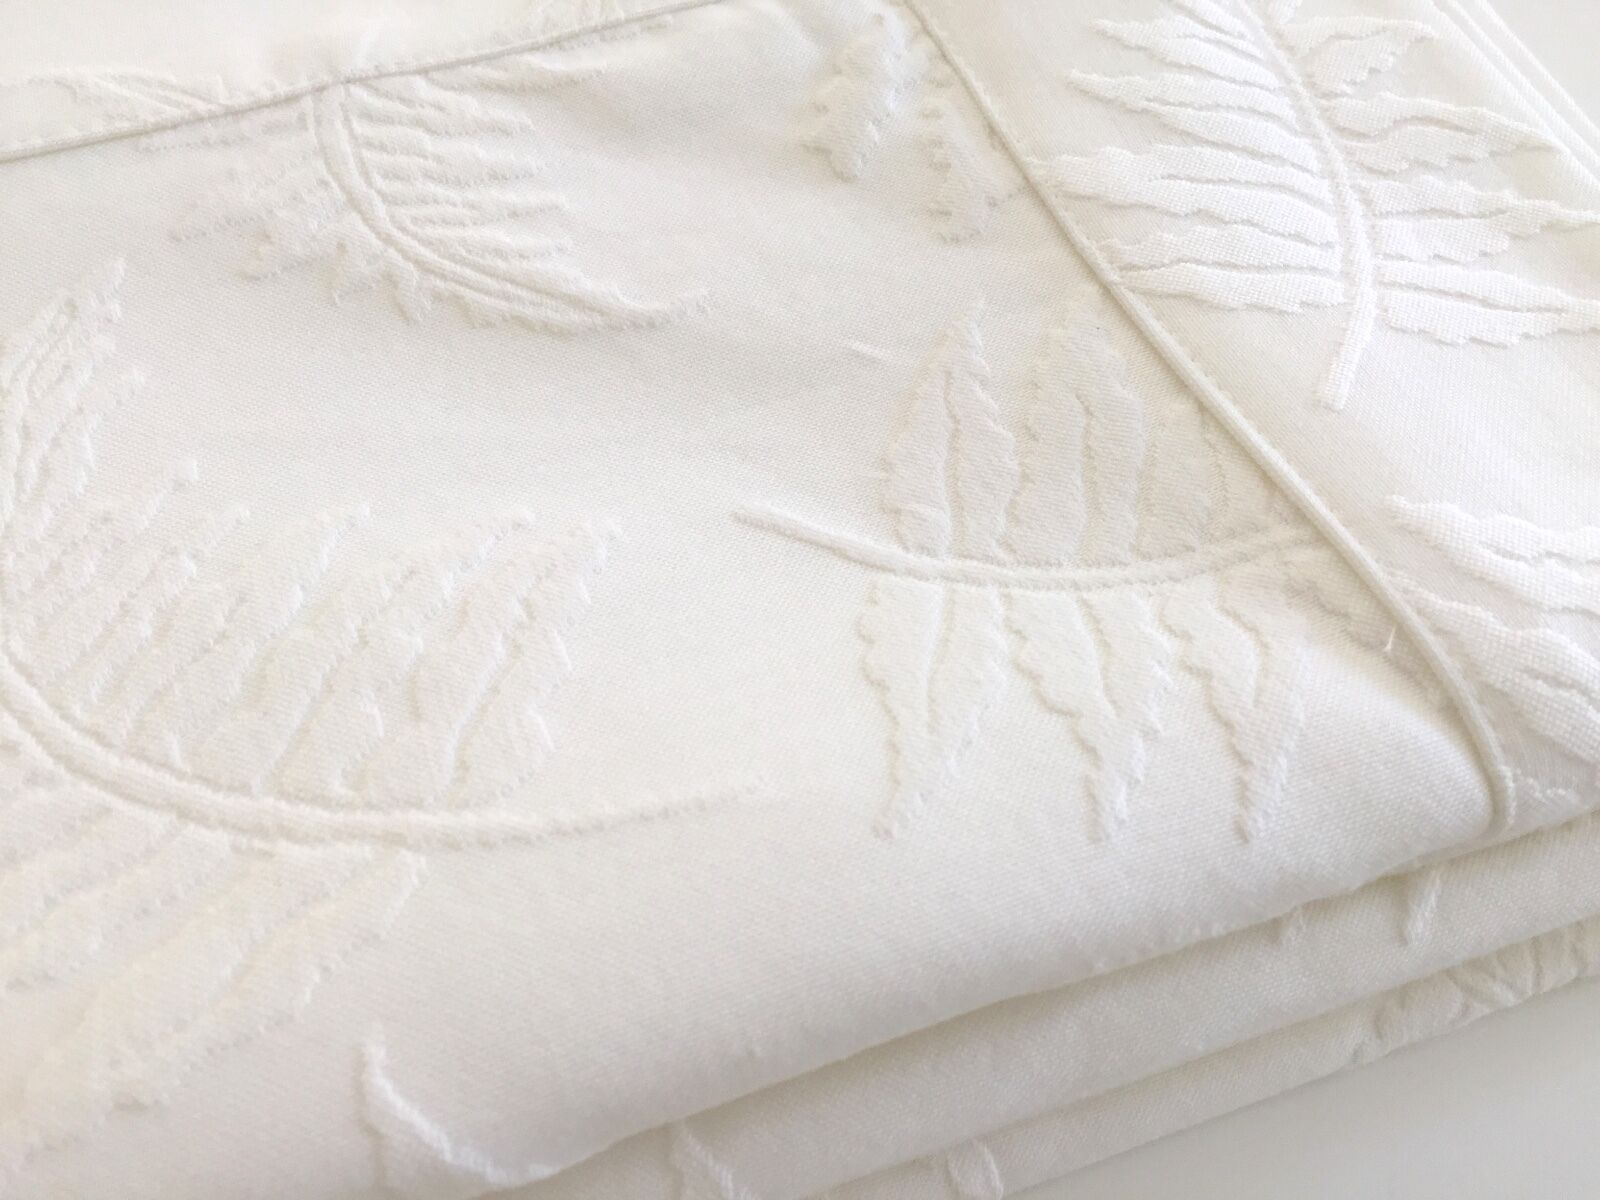 Beautiful Deluxe Jacquard Matelasse Coverlet Bedspread Blanket 160x240cm White